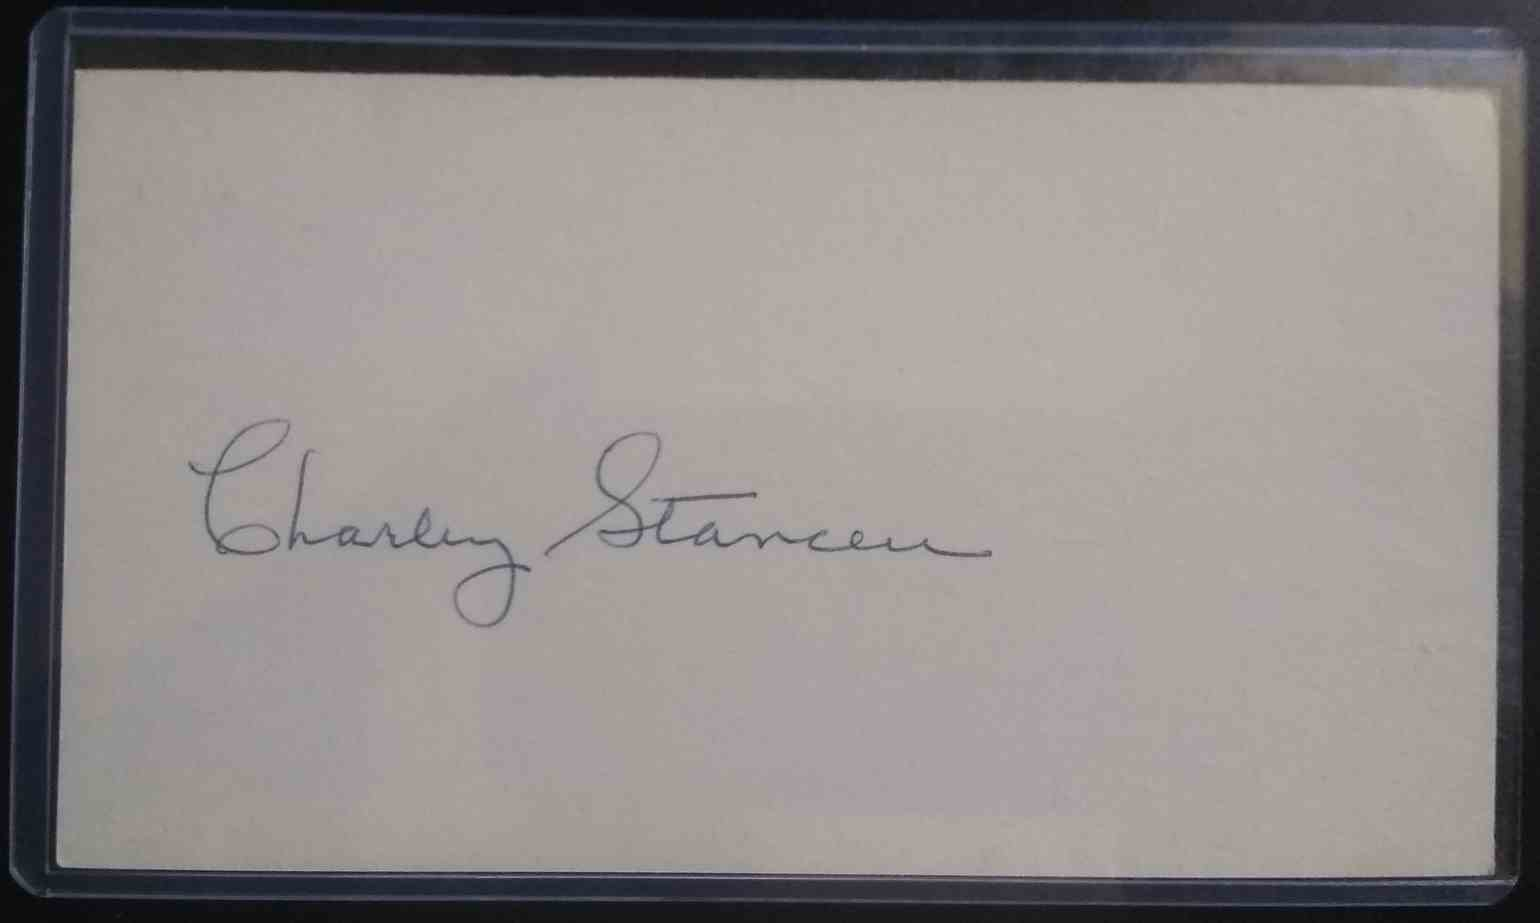 1941 3X5 Charley Stanceu card front image